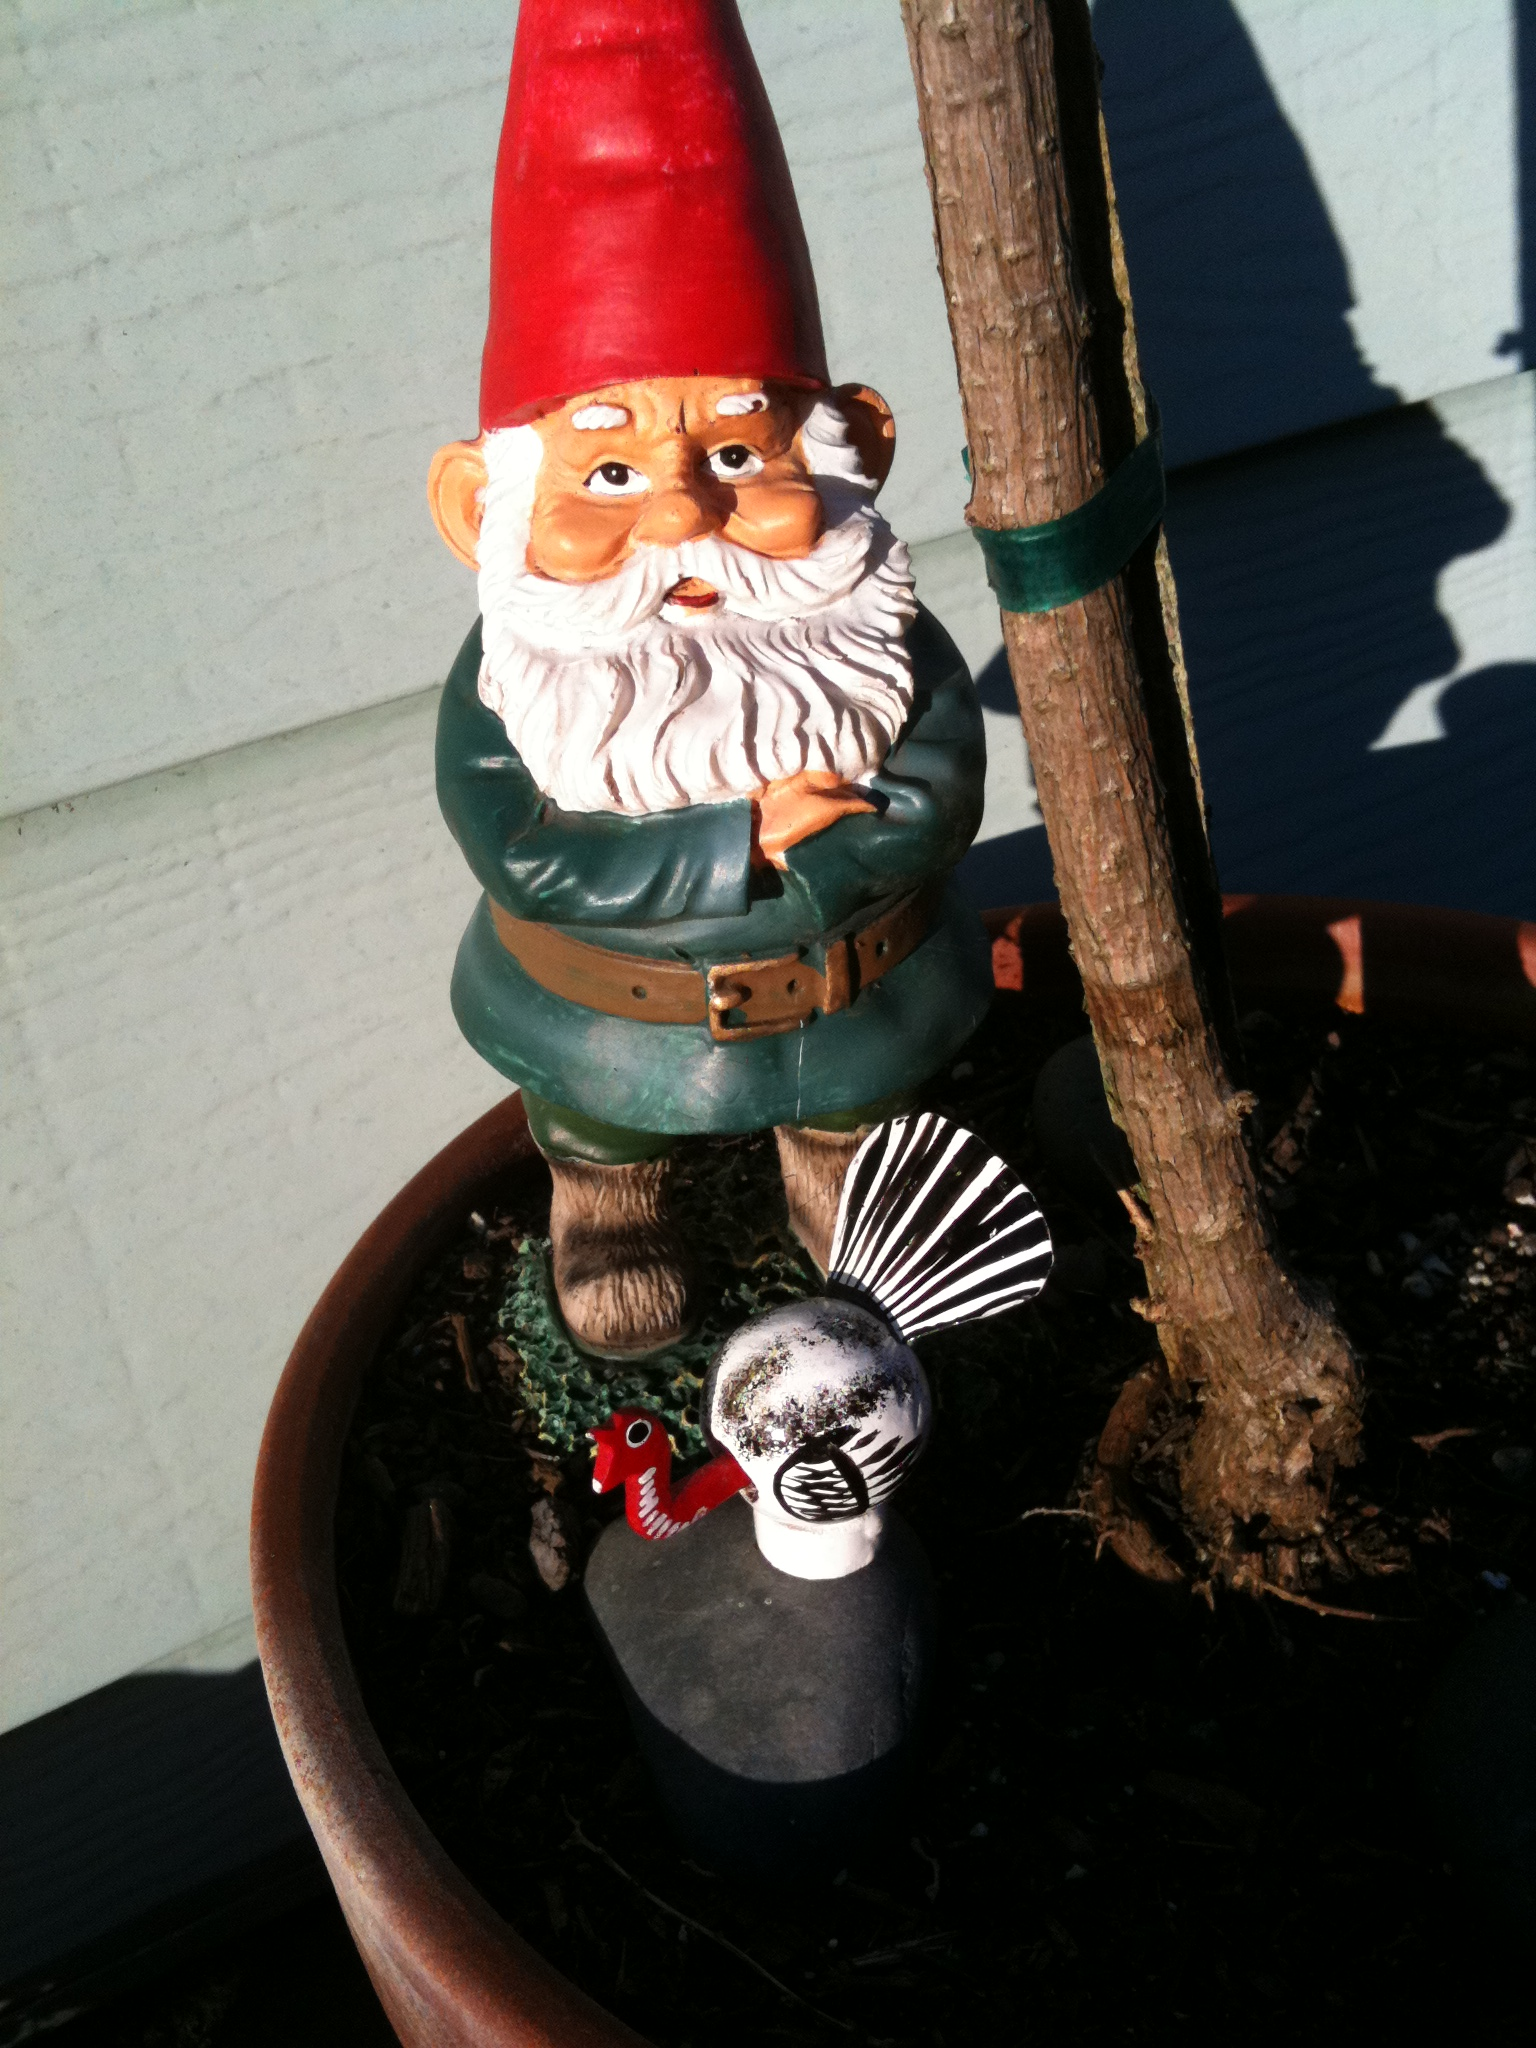 The Impossible Turkey and his friend the Gnome.